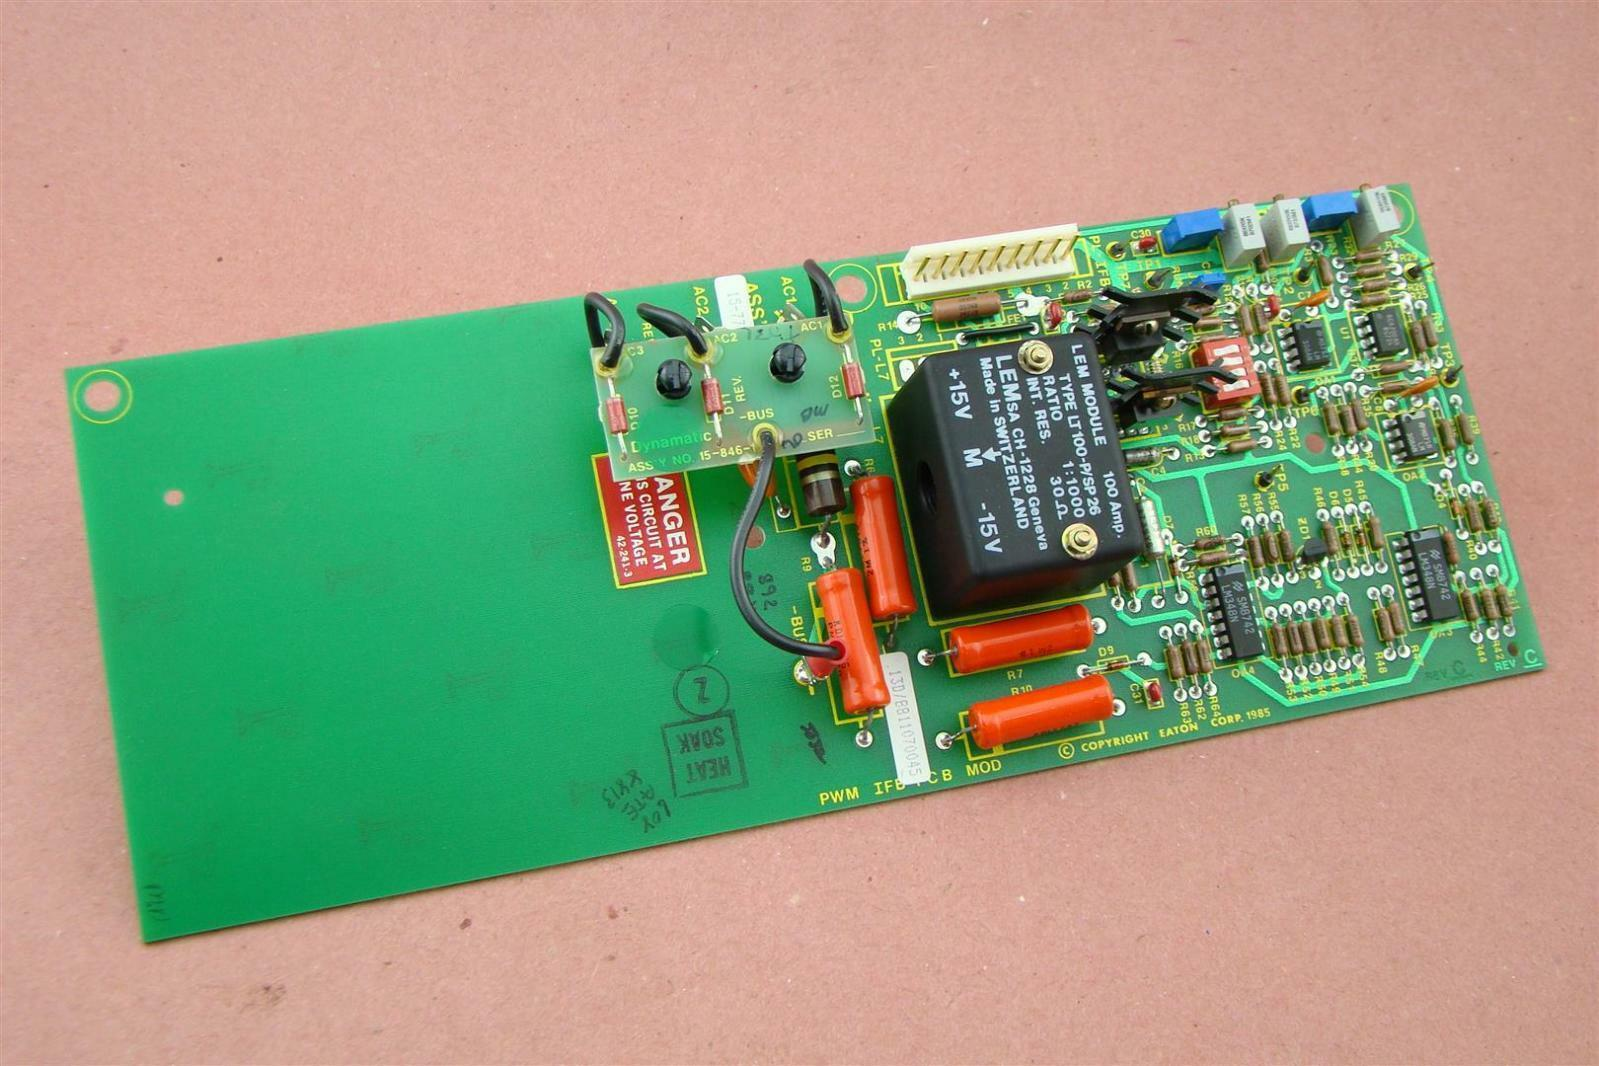 Details about Eaton Power Circuit Board, Dynamic 70-235-1,